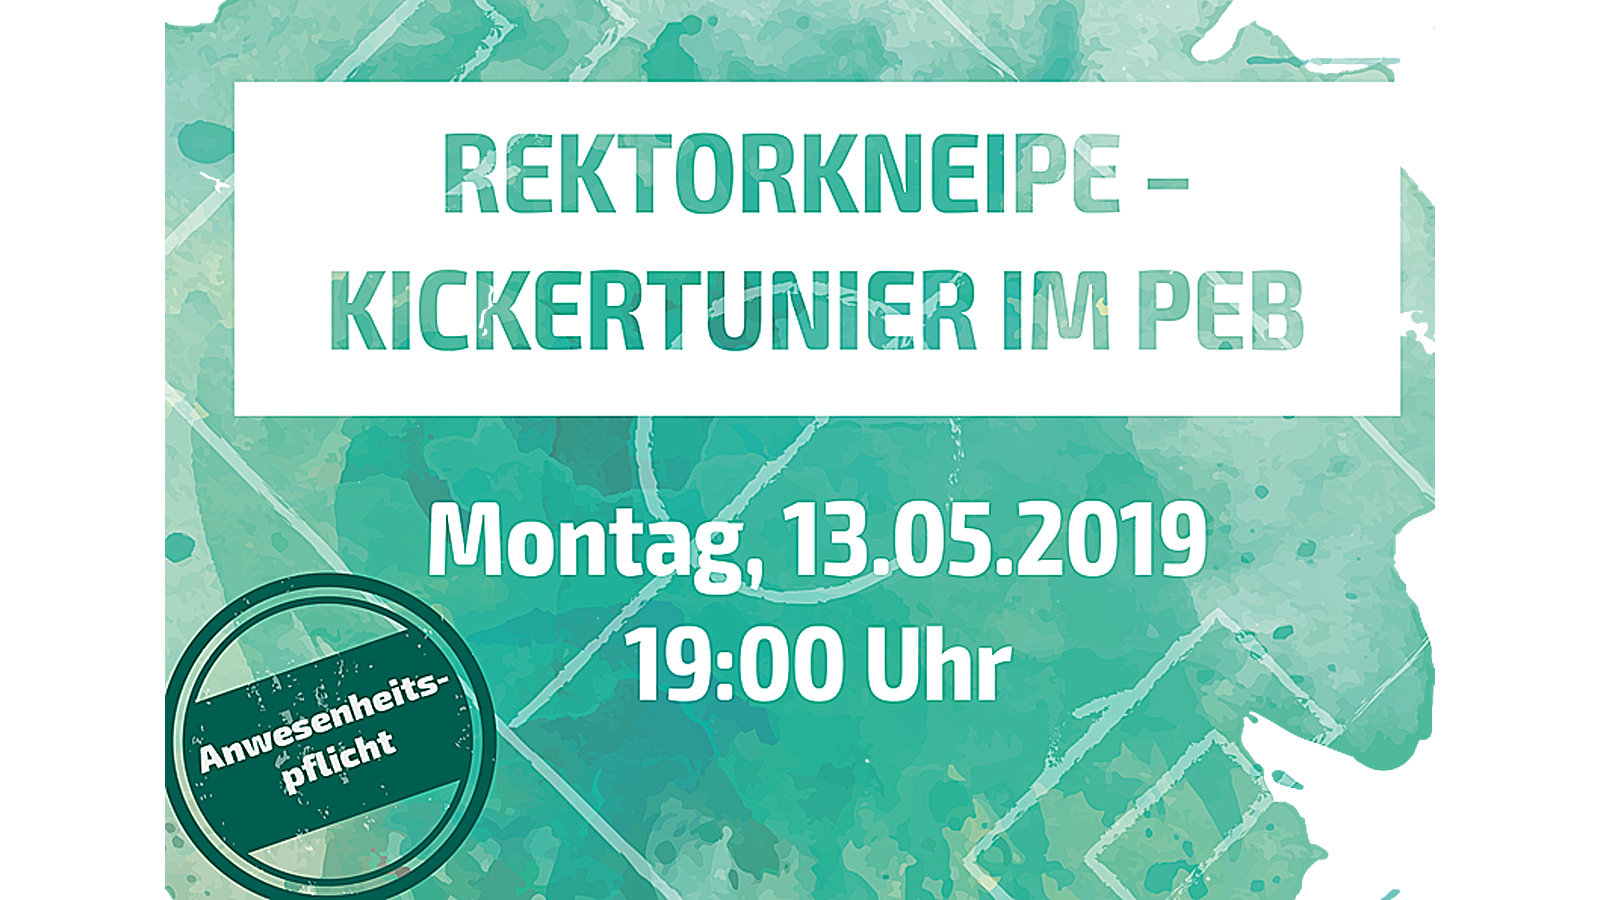 A text on the picture says Rektorkneipe - Kickerturnier in PEB.